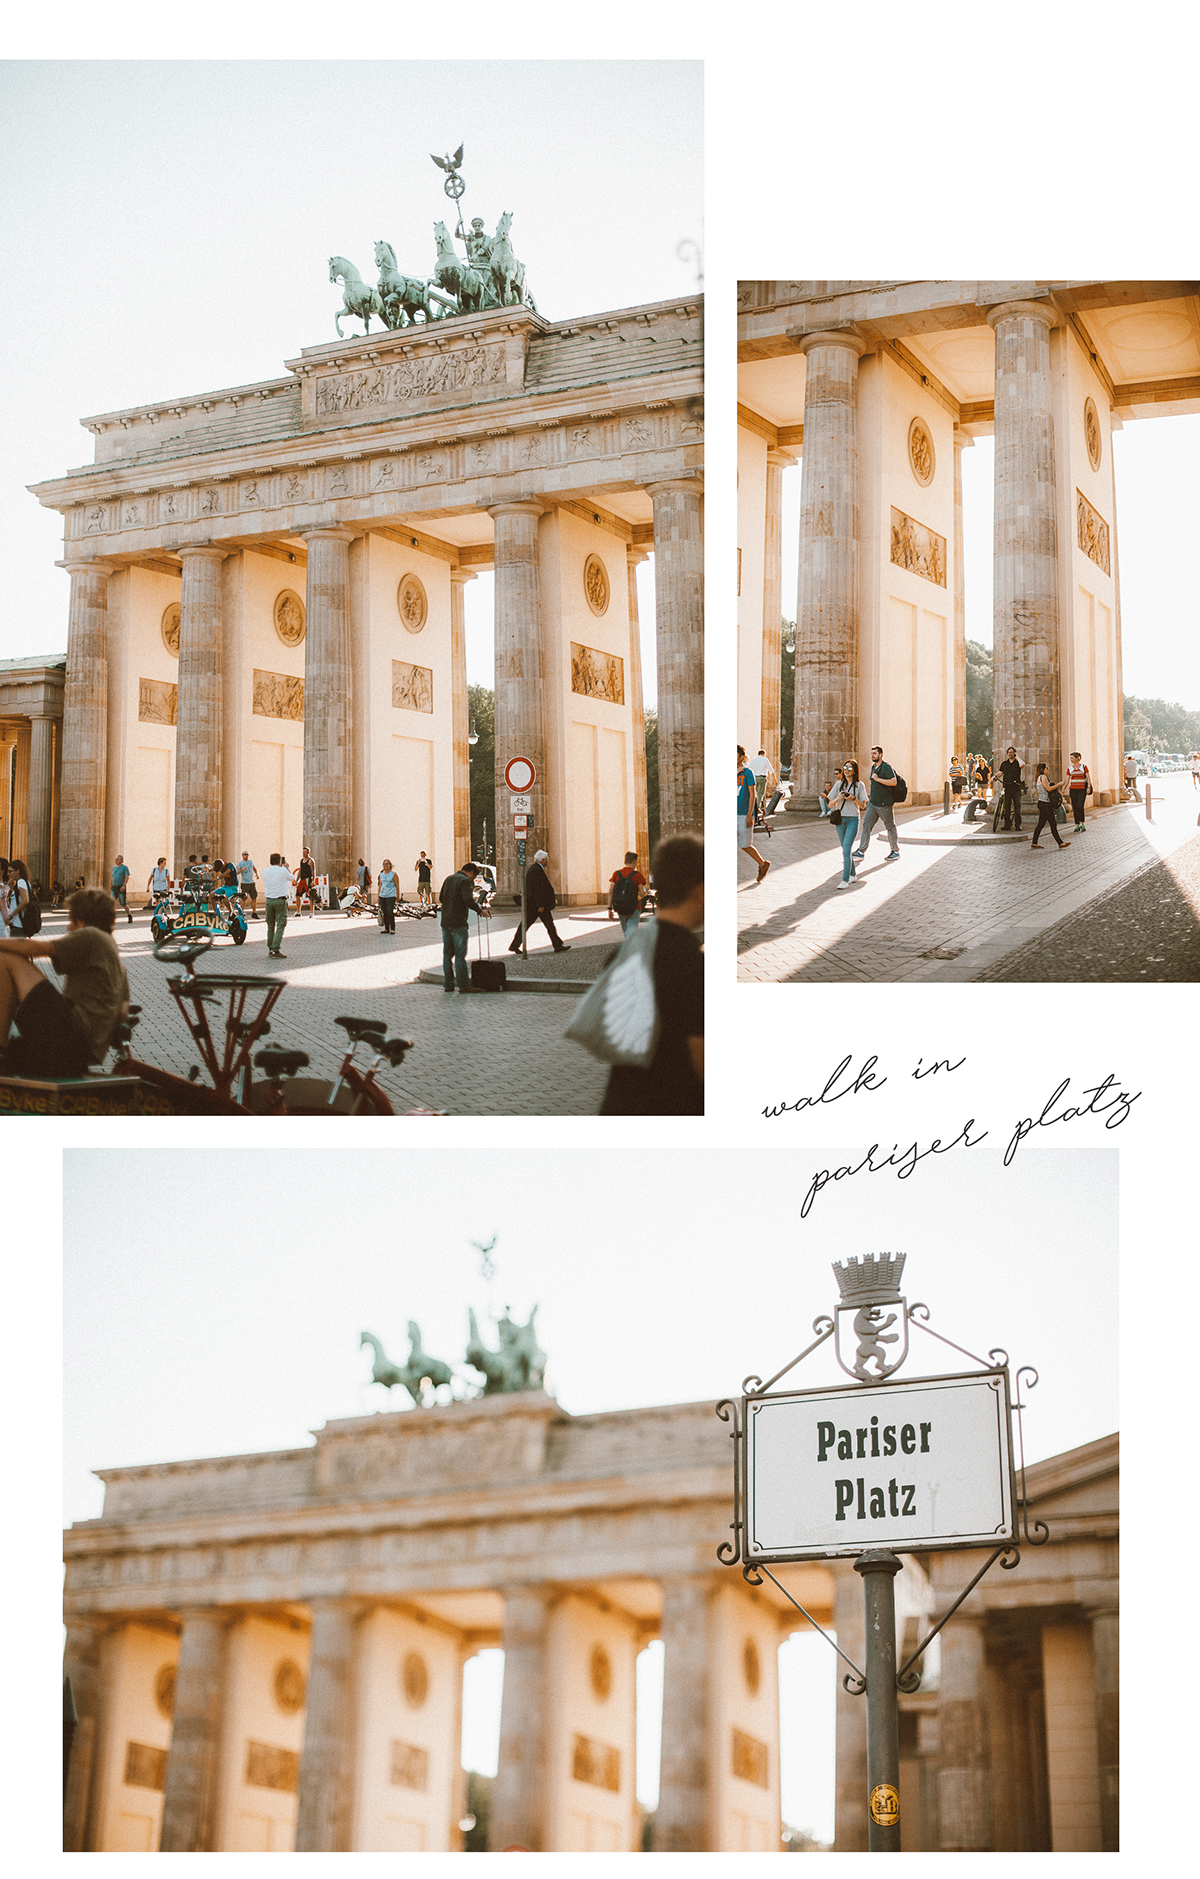 Berlin Pariser Platz collage